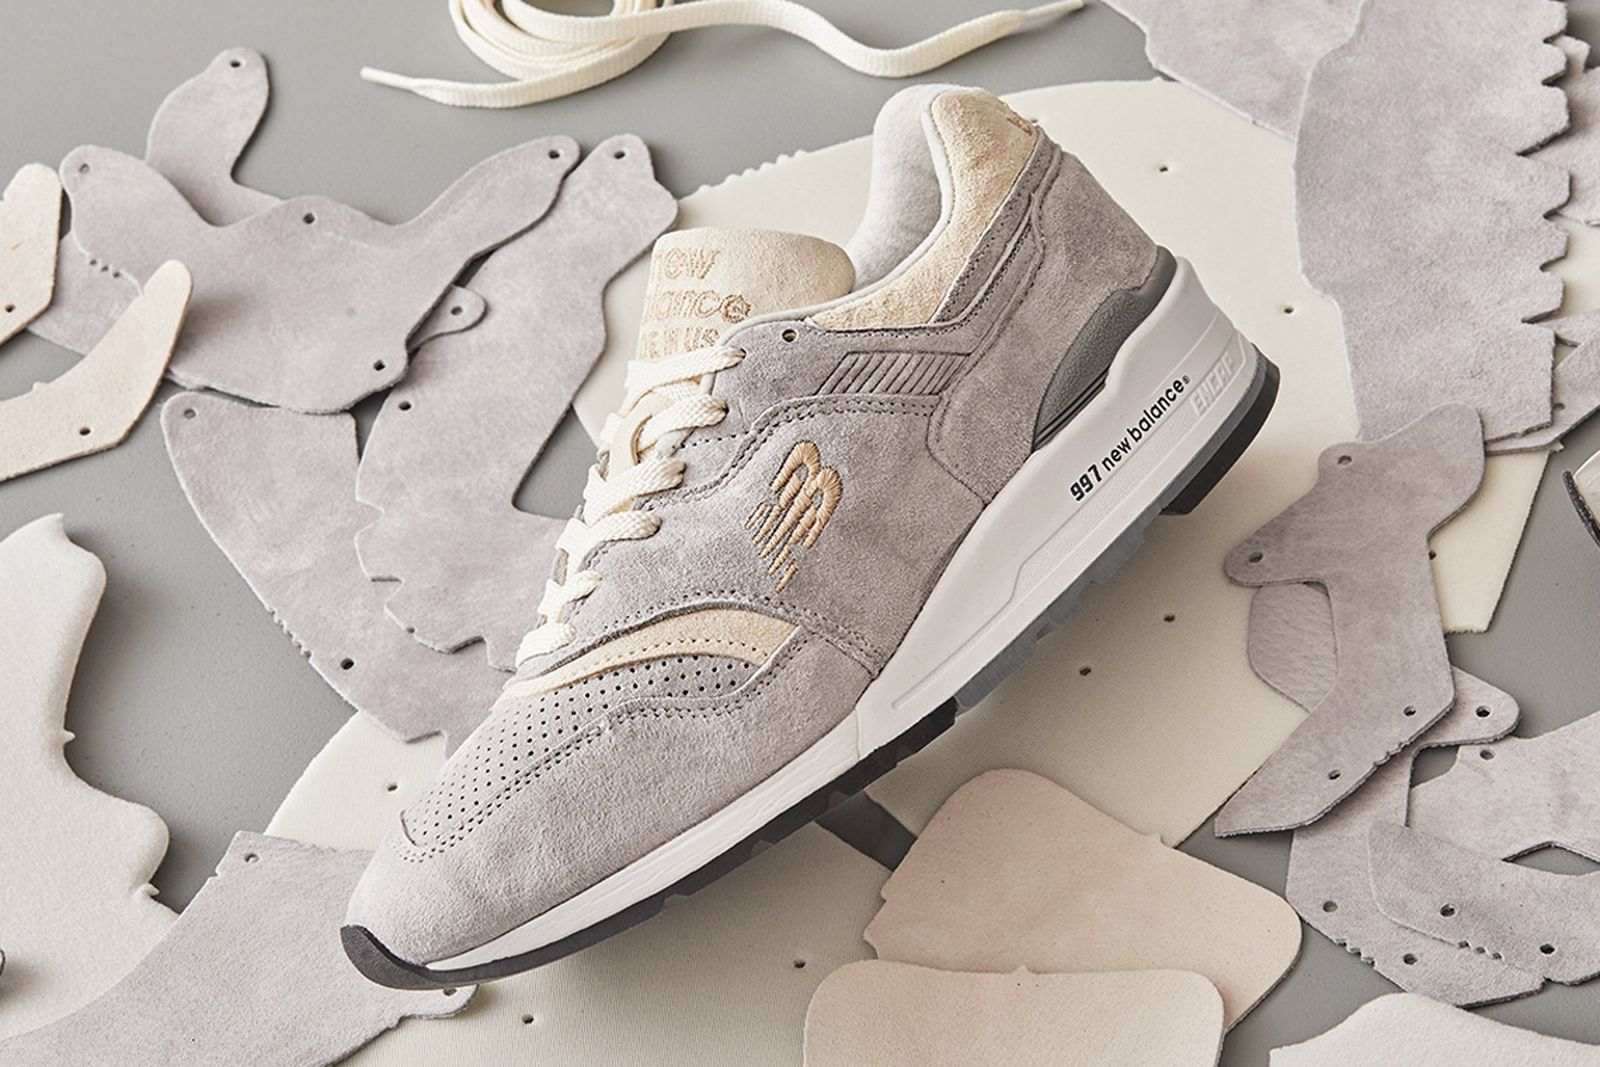 todd-snyder-new-balance-triborough-997-release-date-price-02